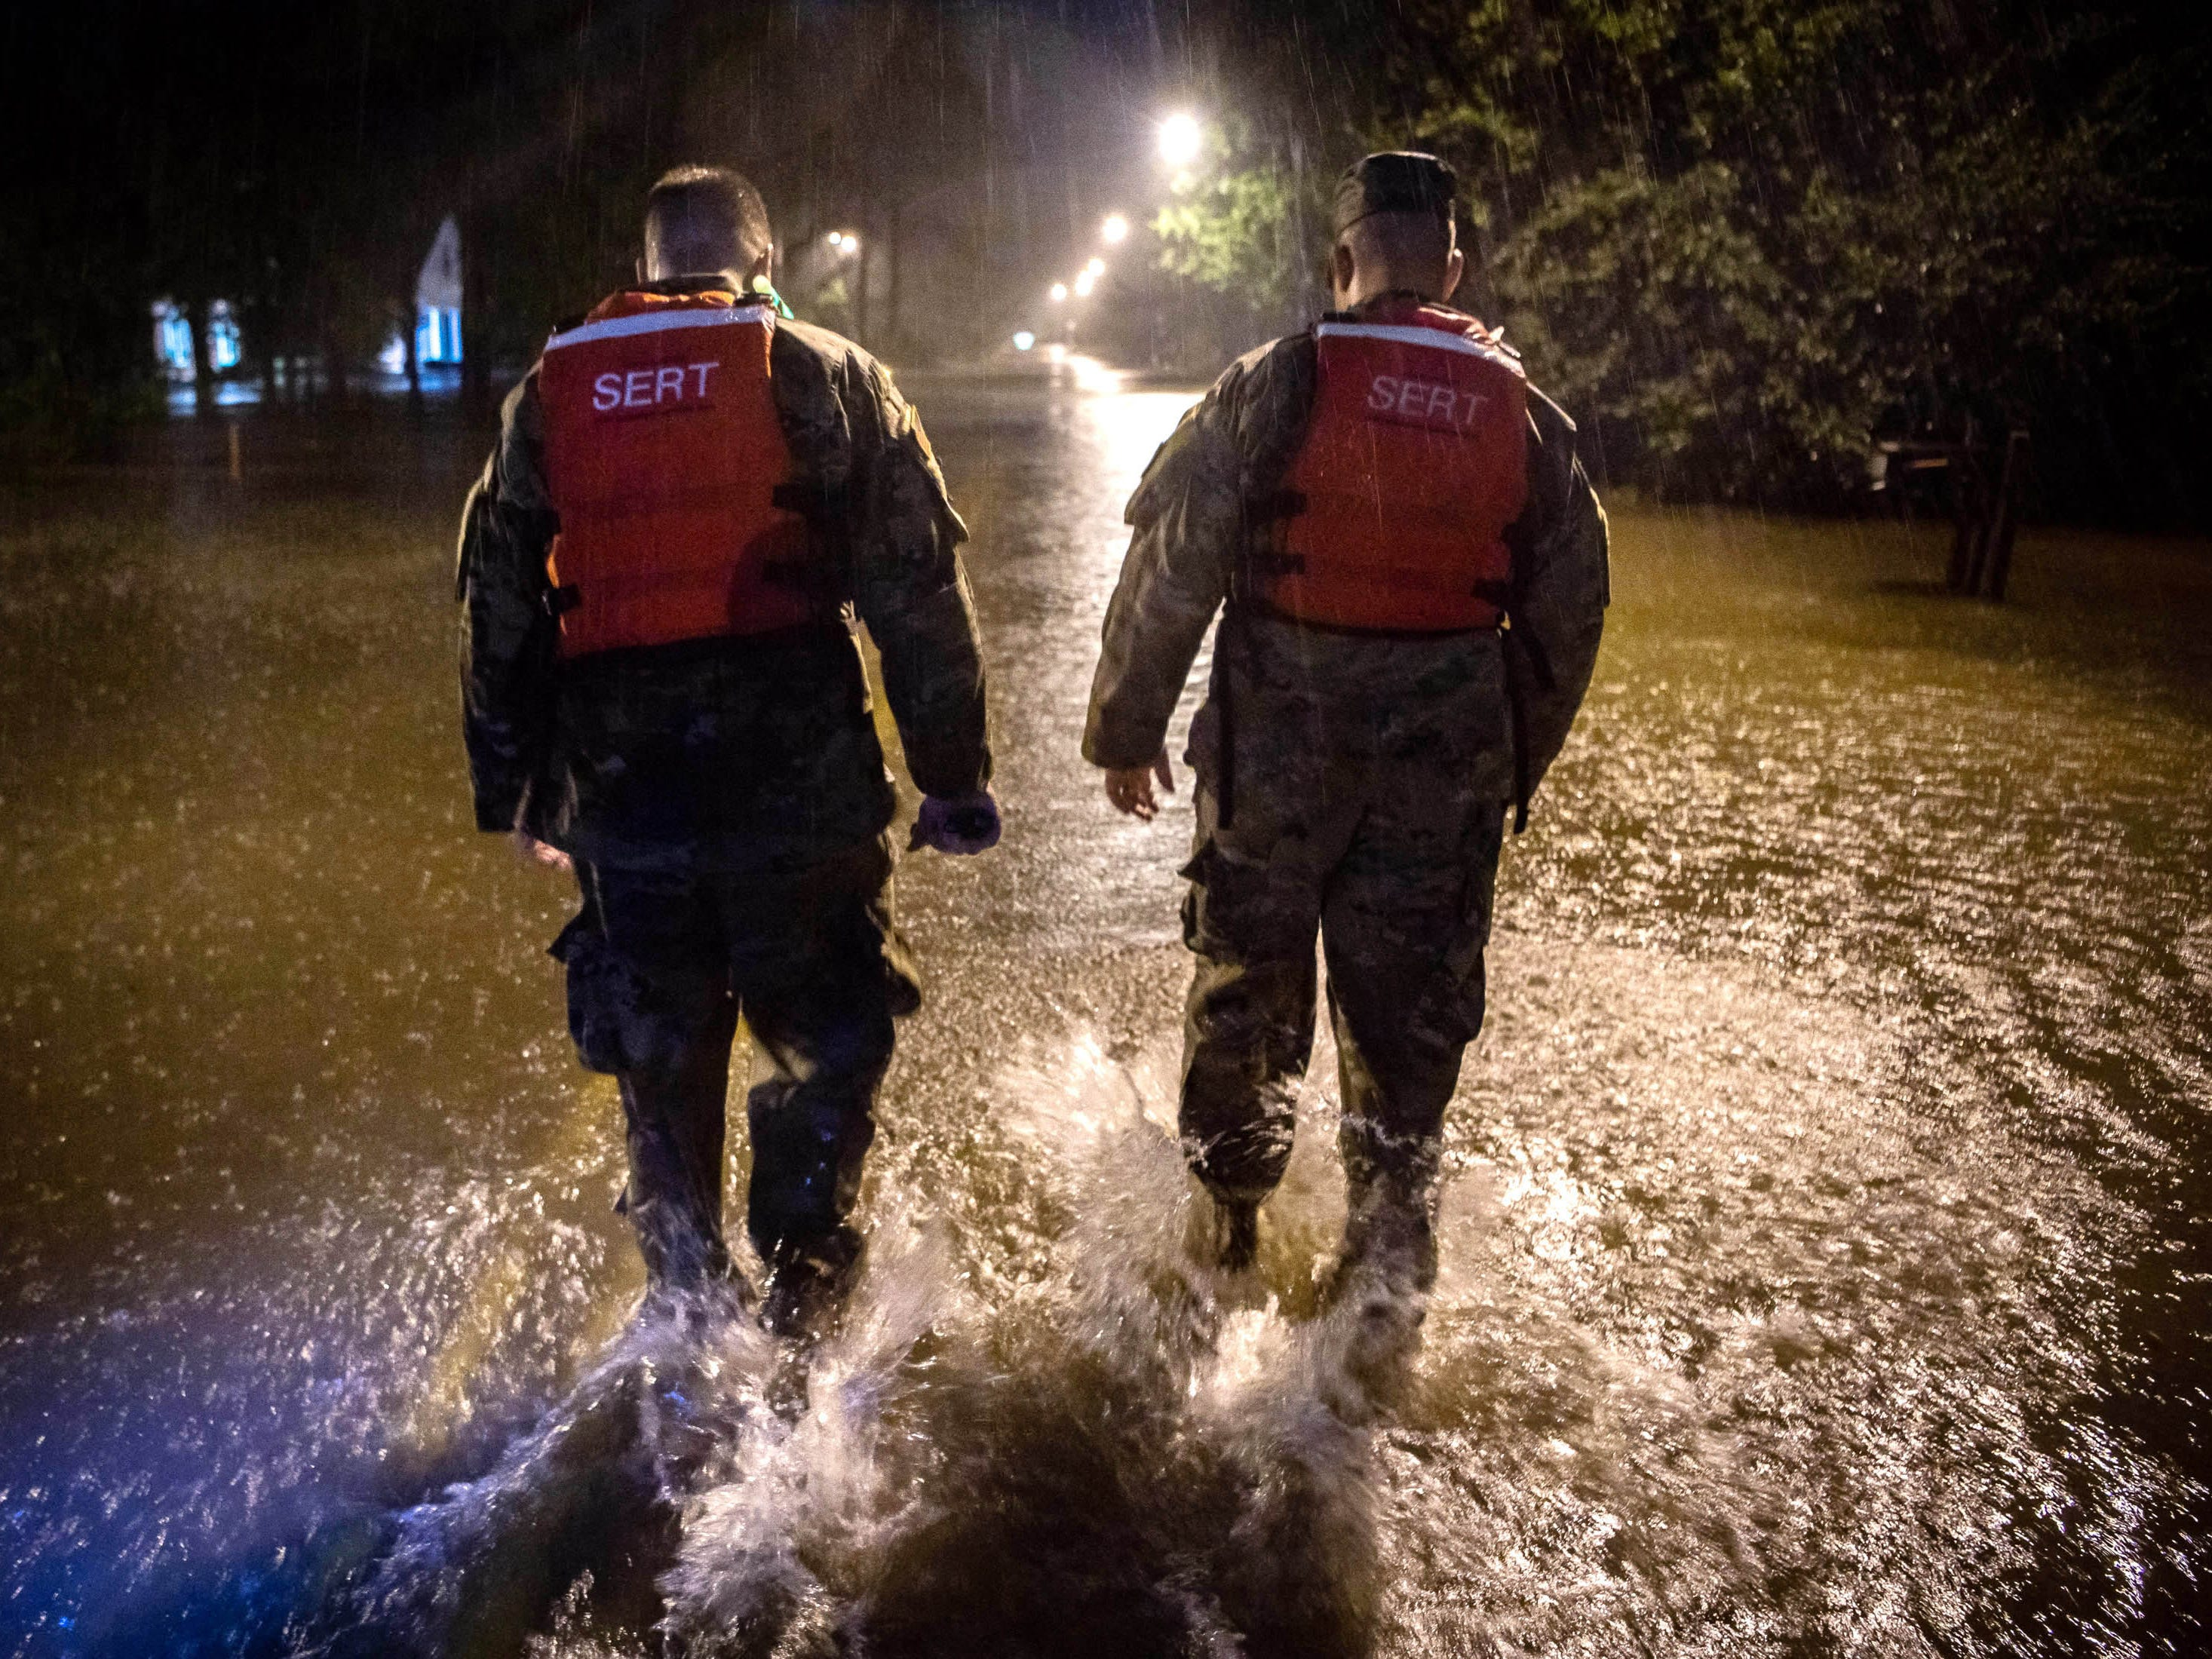 Command Sgt. Maj. Sid Baker, left, and 1st Sgt. Christopher Jones of the North Carolina National Guard patrol a flooded neighborhood as rain from tropical storm Florence continues to fall on Lumberton, N.C., on Sept. 15, 2018.